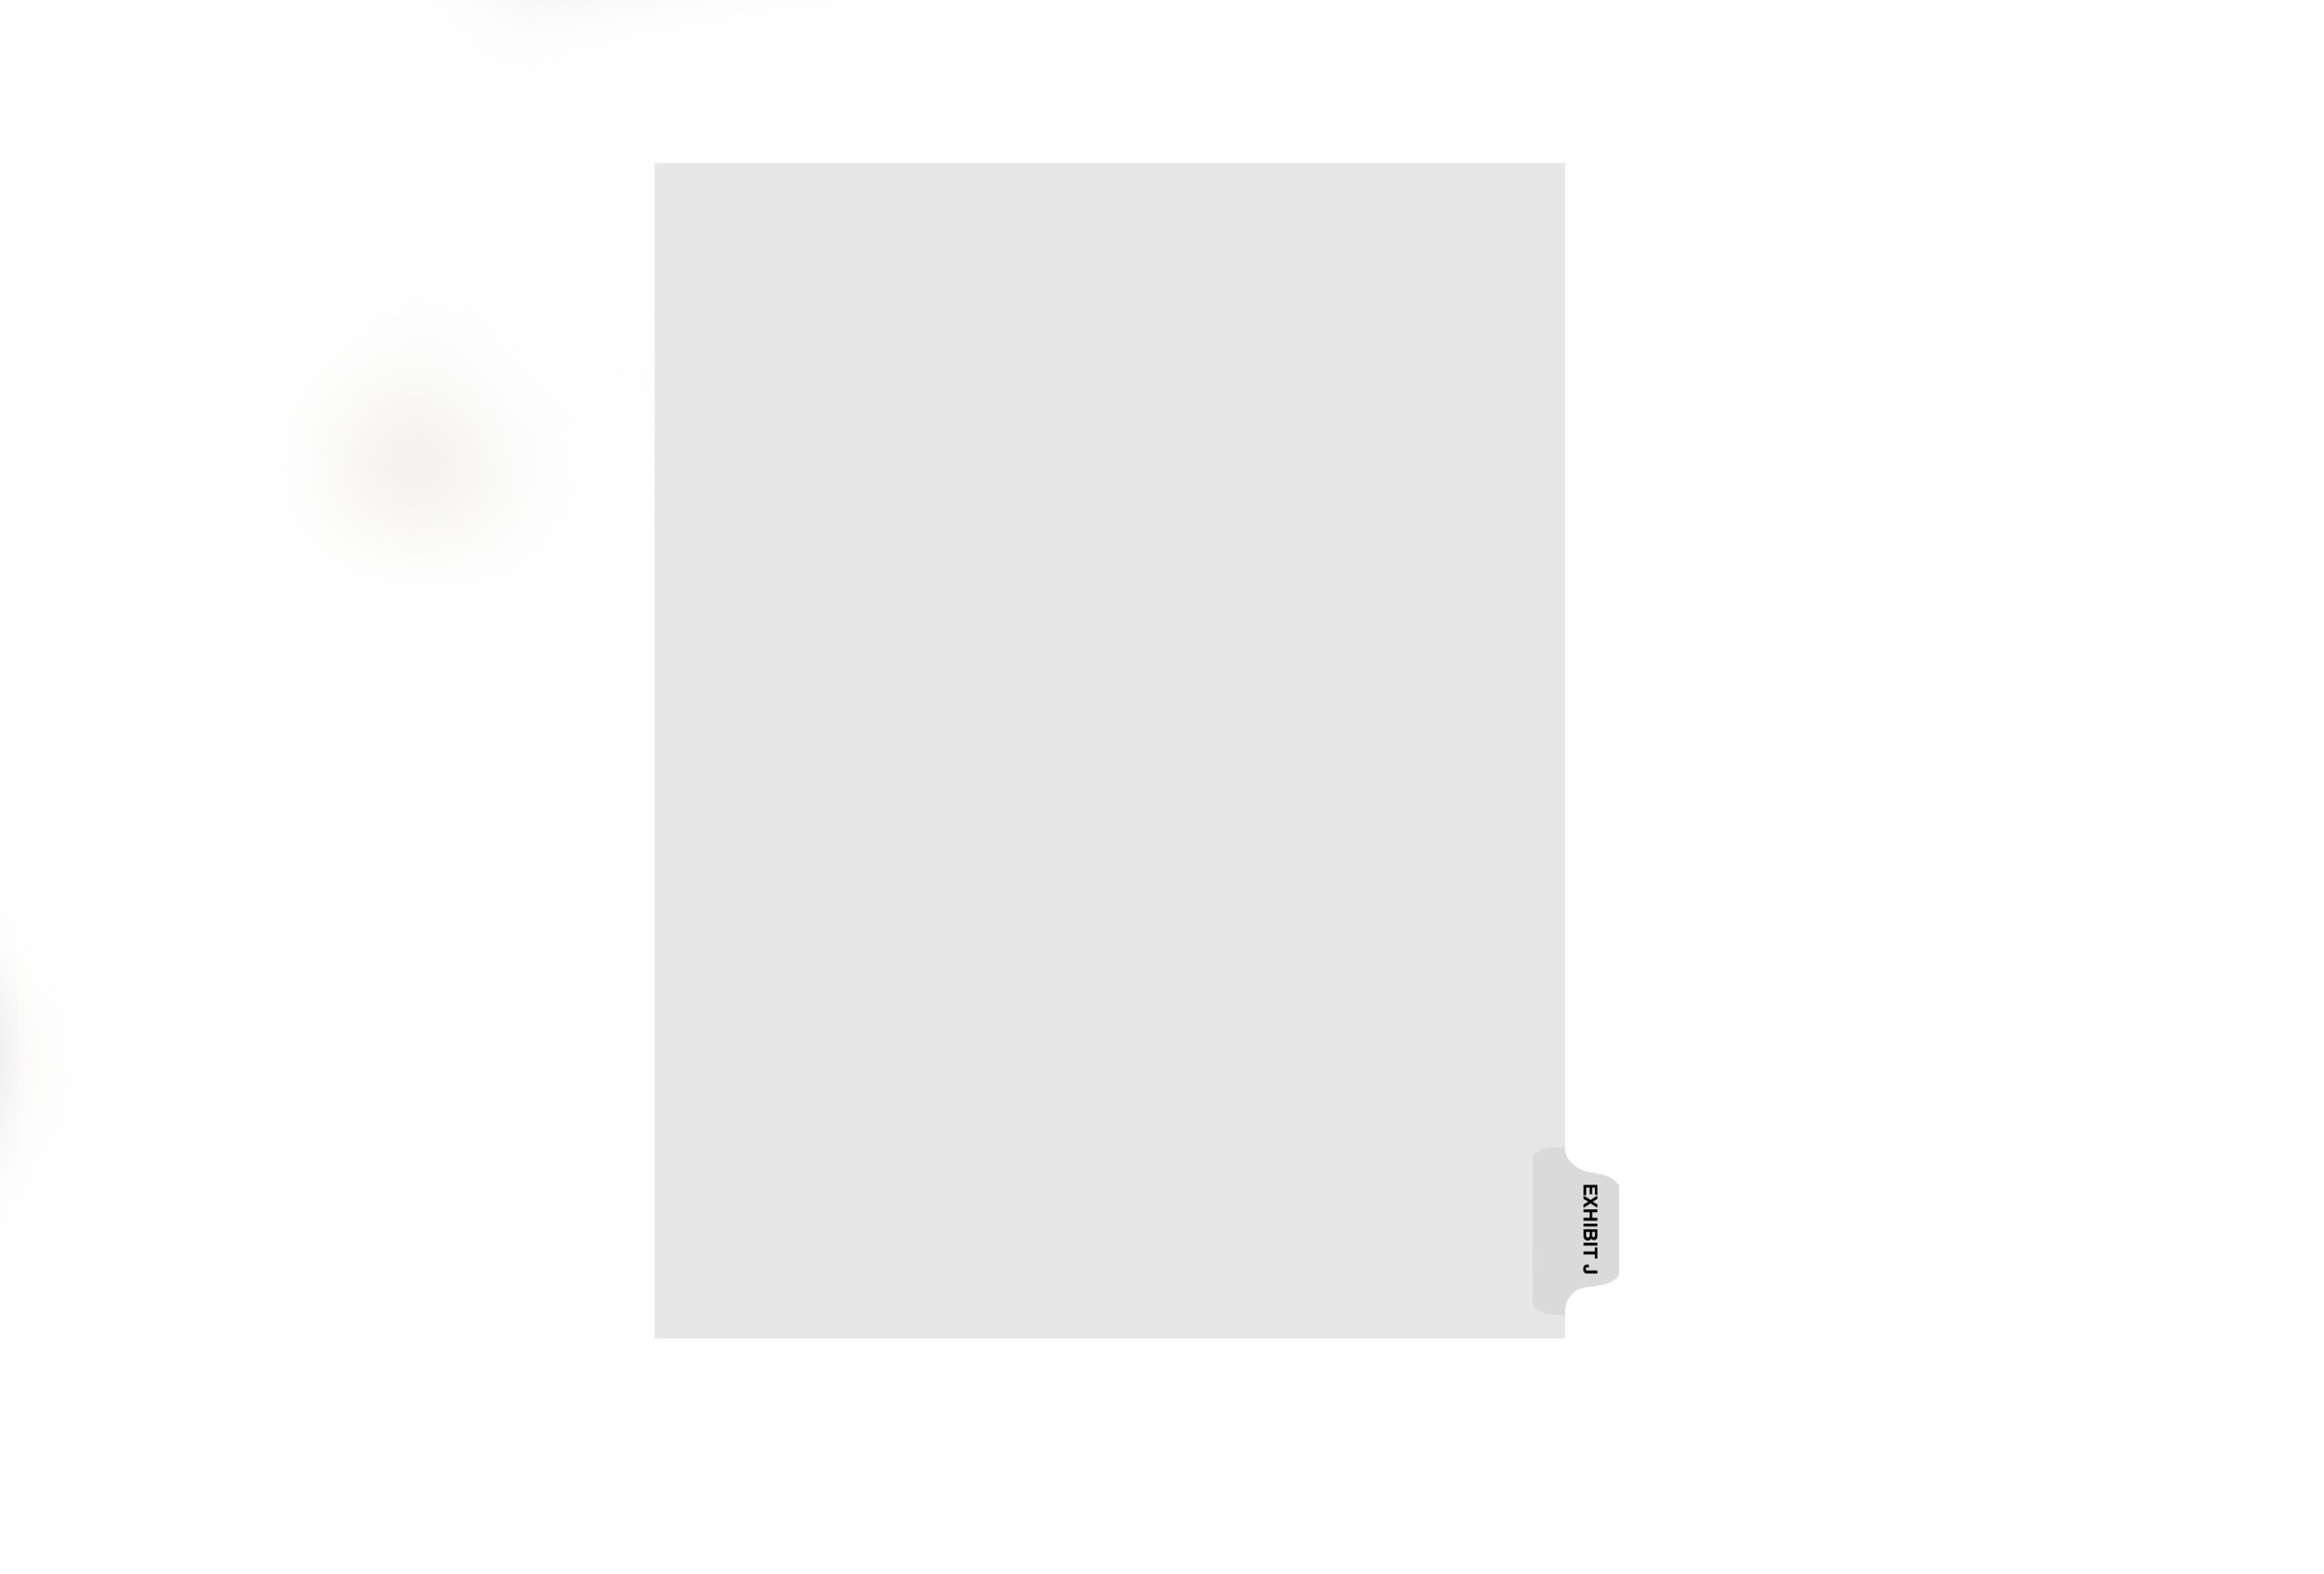 Kleer-Fax Letter-Size Individual Exhibit Letter Index Dividers, Side Tab, 1/10th Cut, 25 Sheets per Pack, White, Exhibit J (81010)